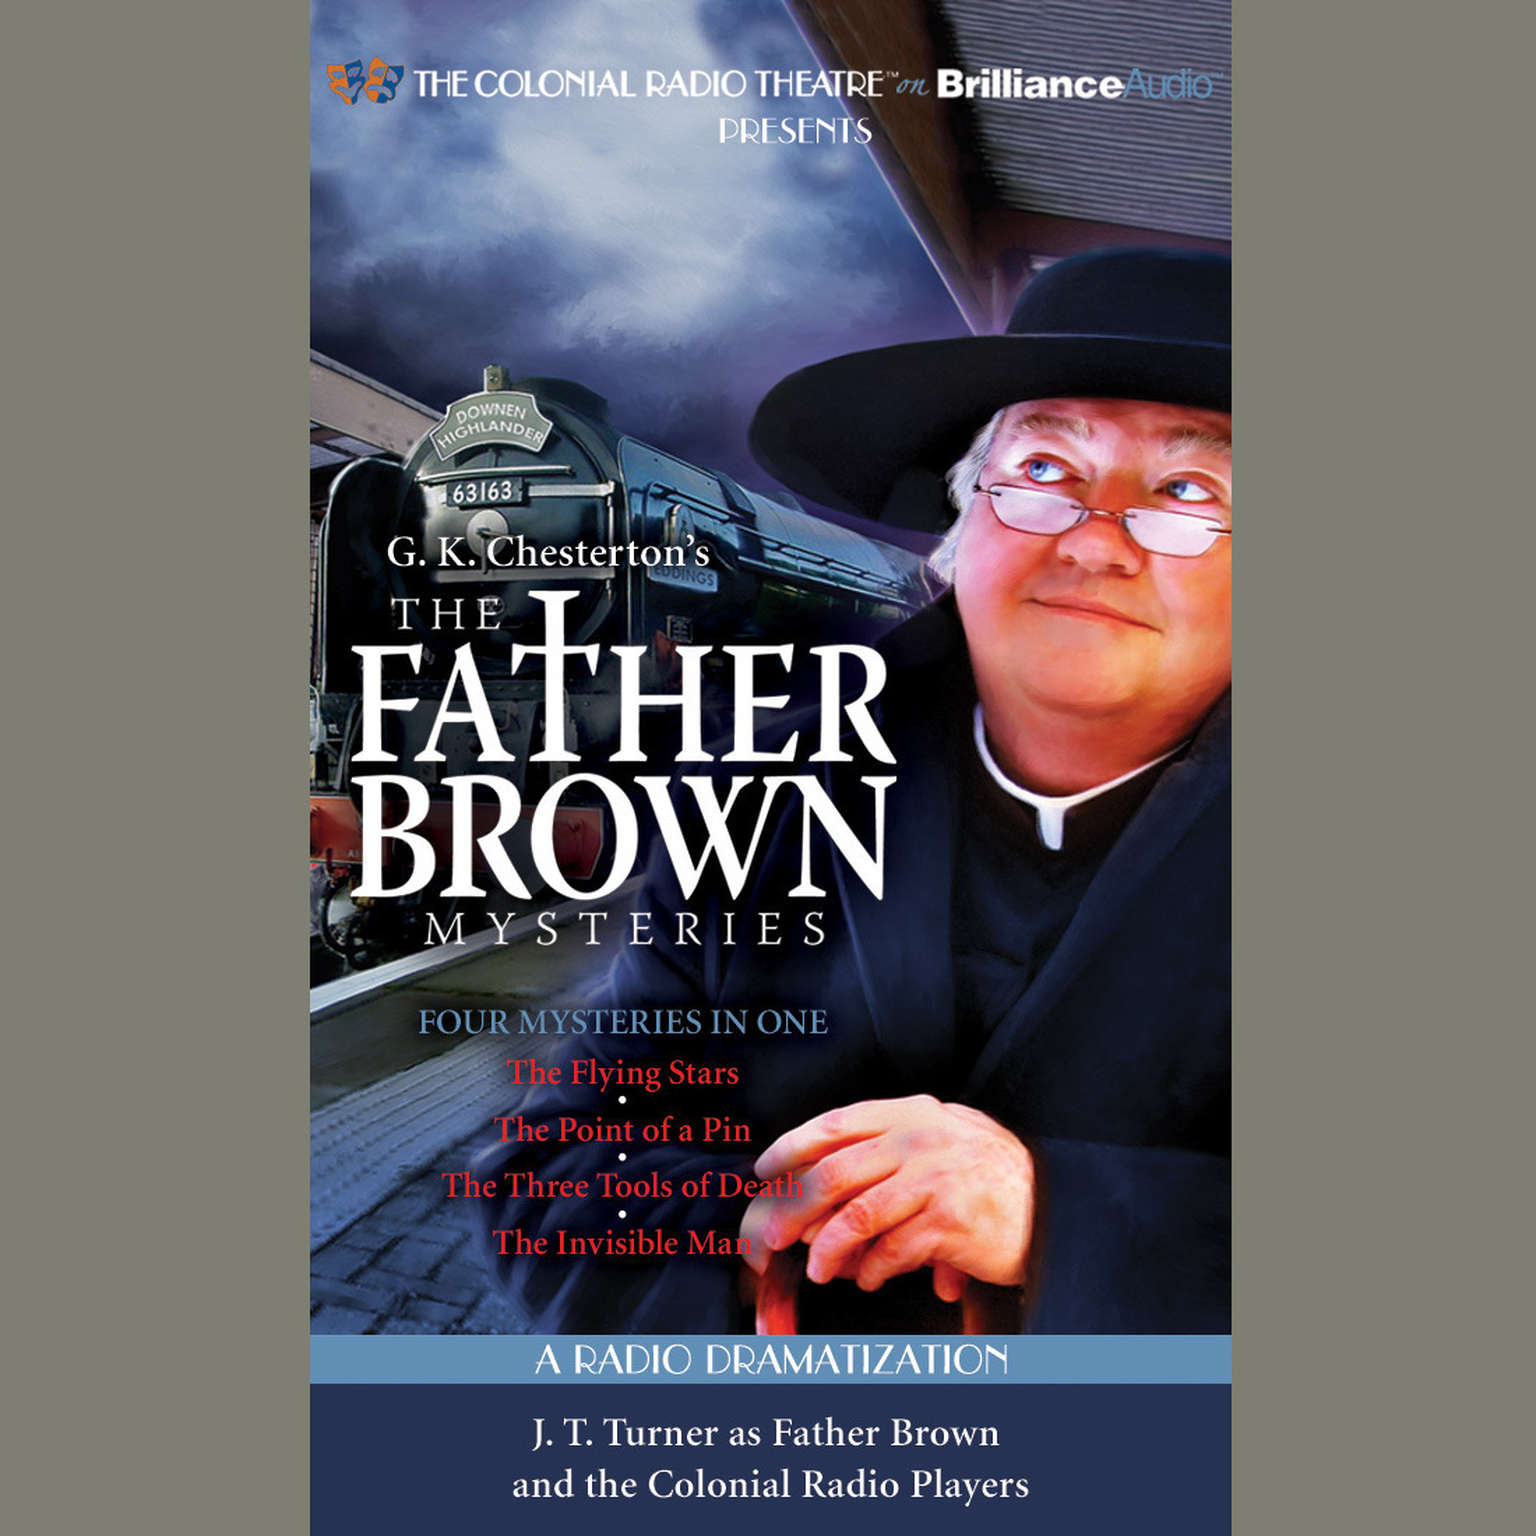 Printable Father Brown Mysteries, The - The Flying Stars, The Point of a Pin, The Three Tools of Death, and The Invisible Man: A Radio Dramatization Audiobook Cover Art